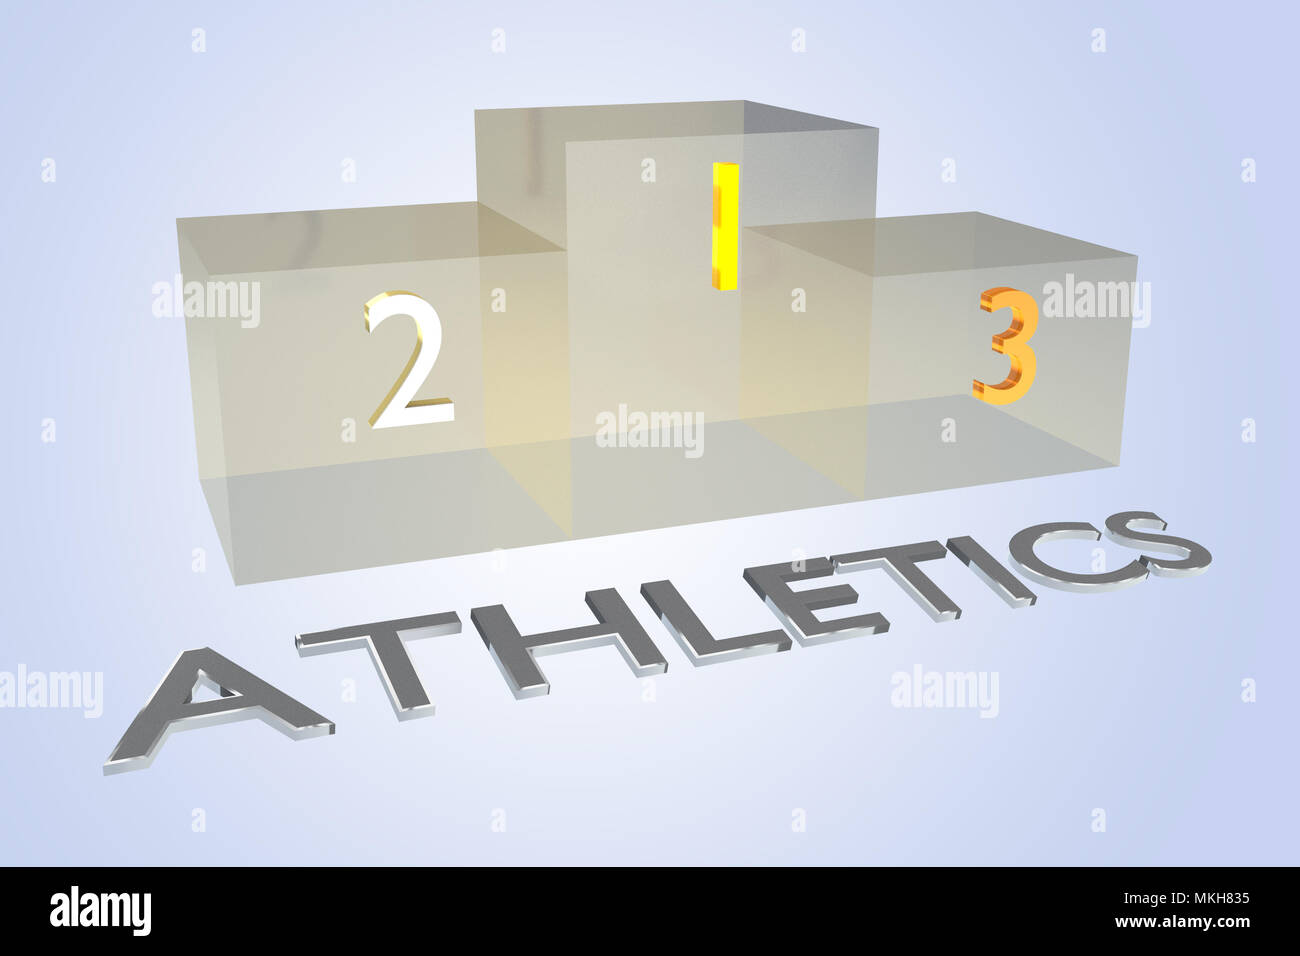 3D illustration of ATHLETICS title with a podium as a background - Stock Image